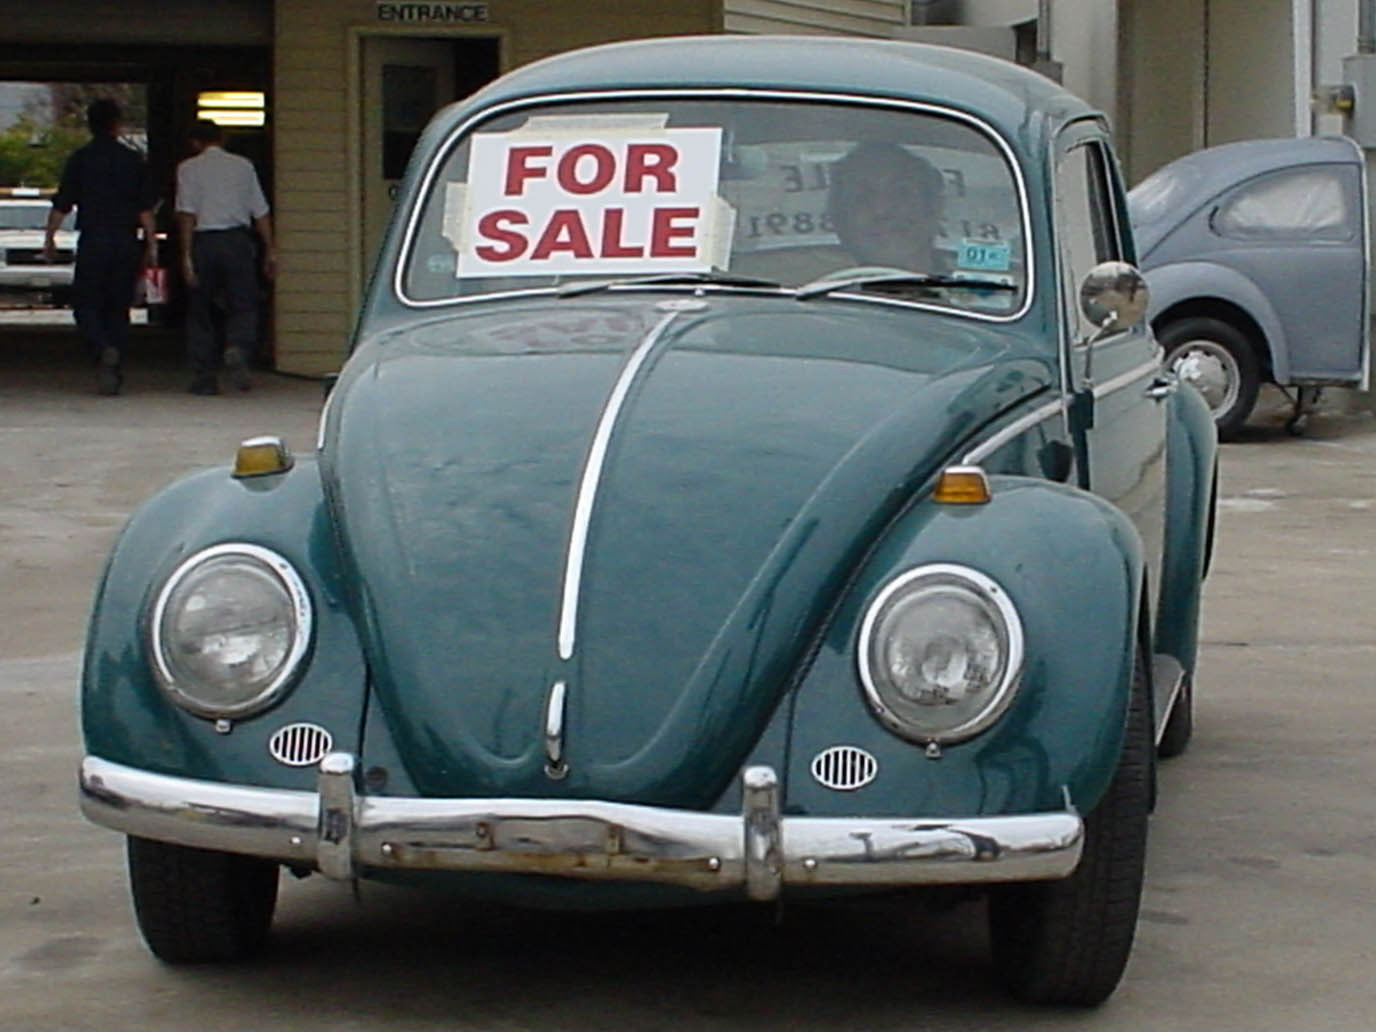 Car for Sale - Strong Automotive Merchandising